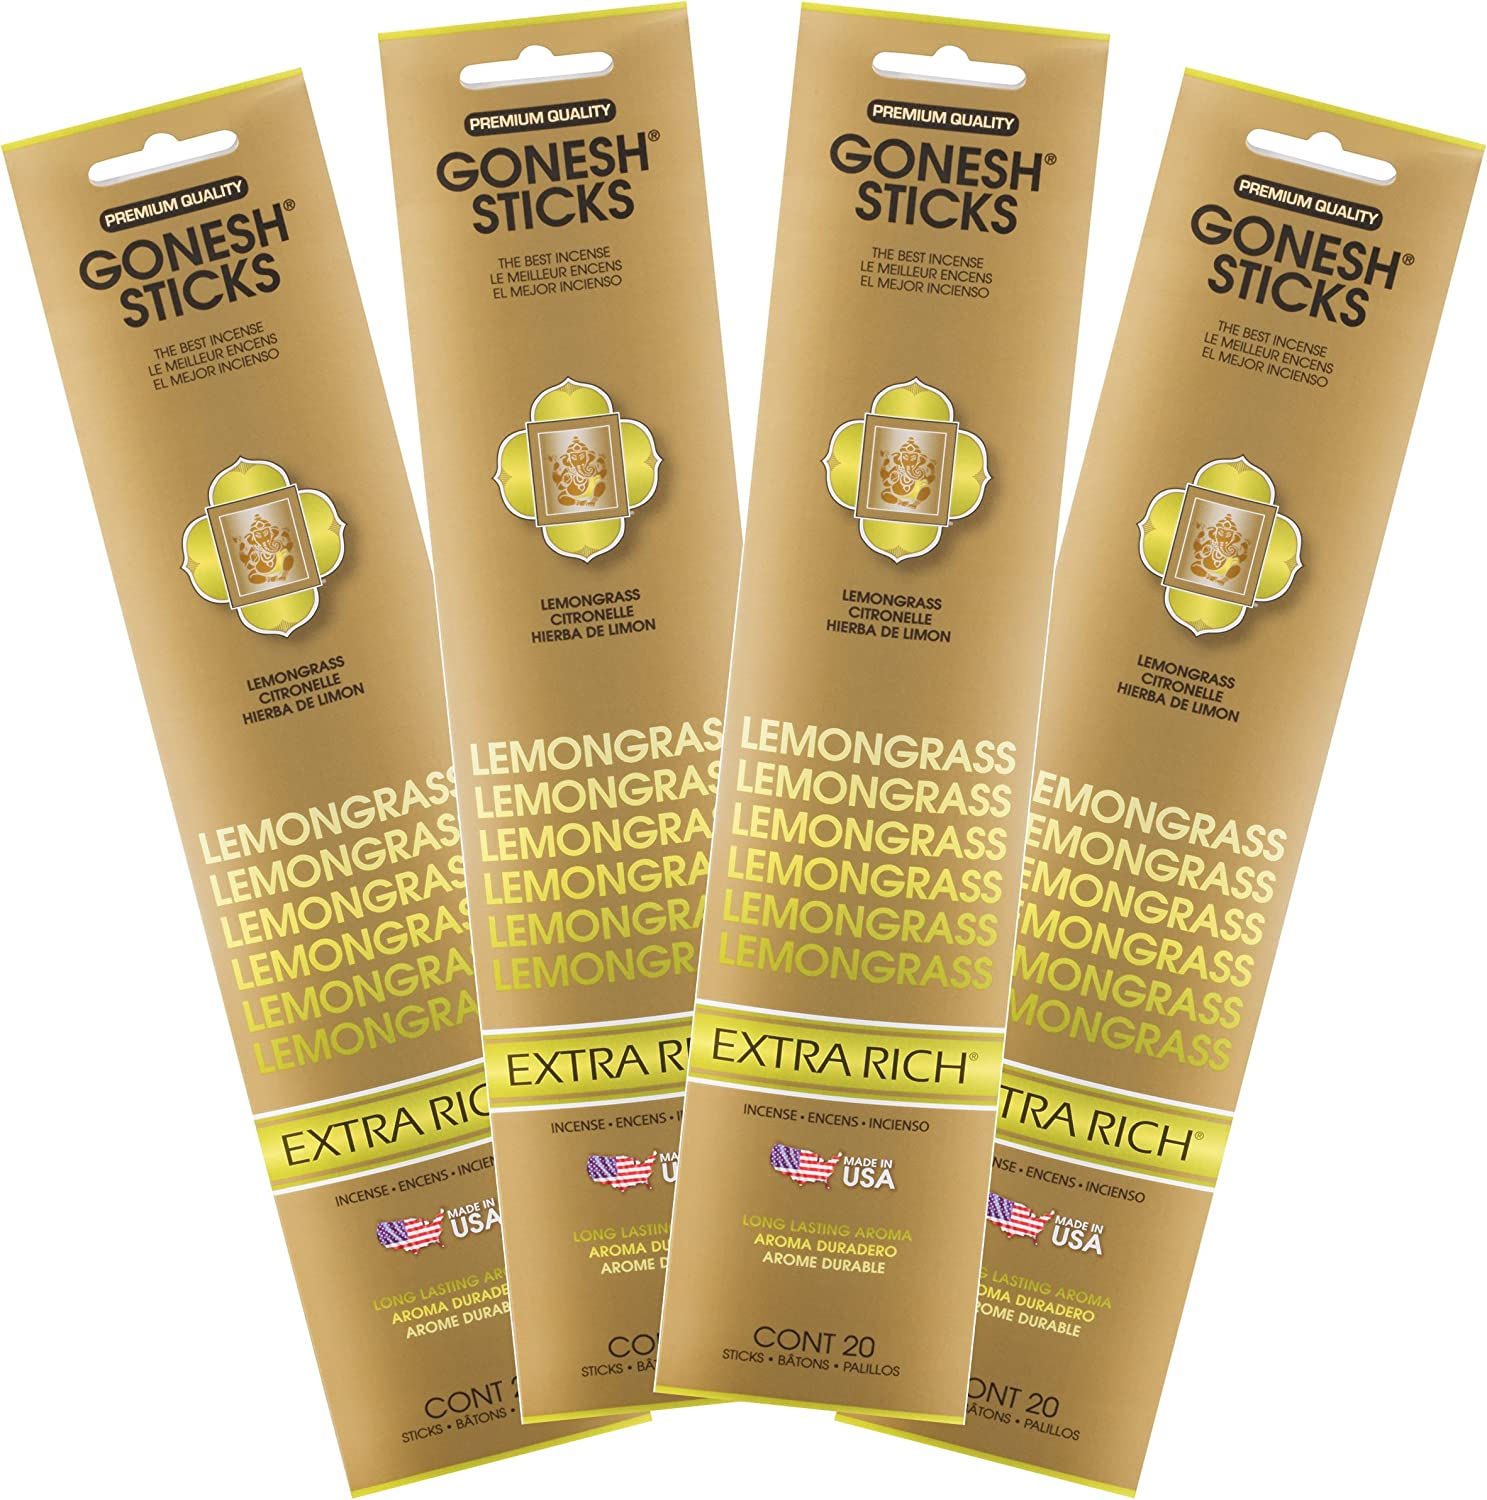 Gonesh Collection Lemongrass 4 Piece 4 Pack-Extra Rich Incense